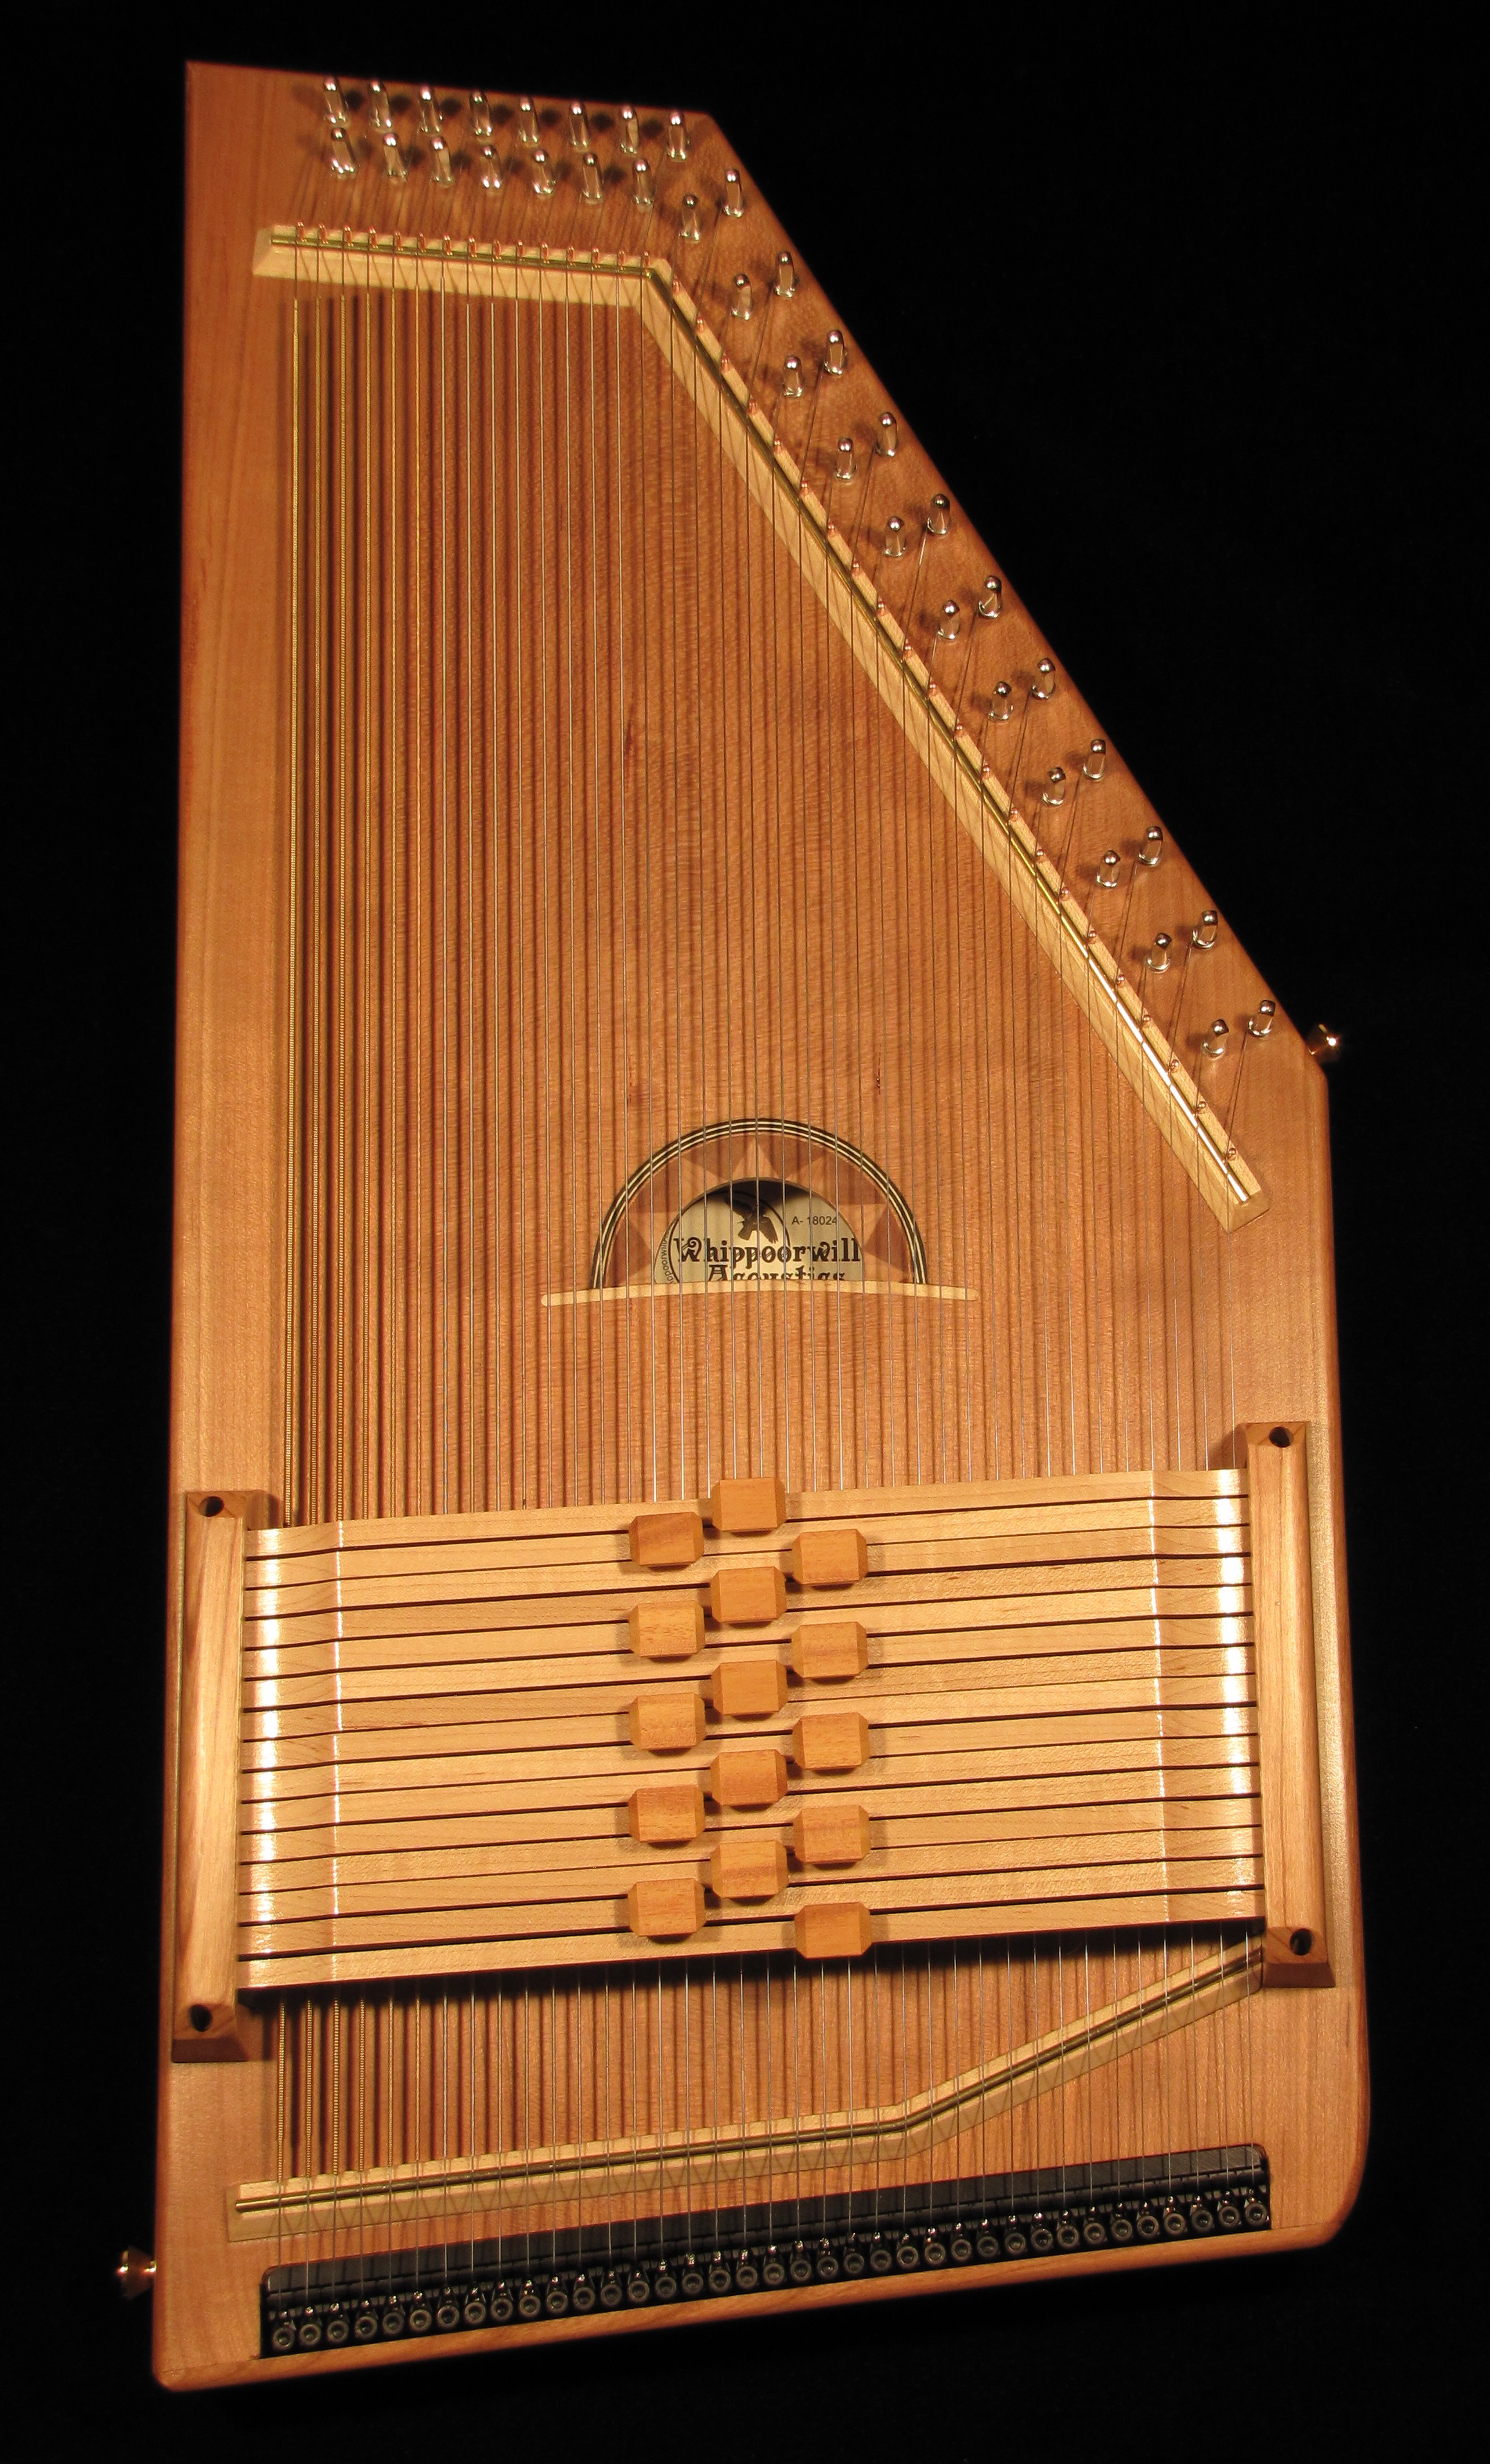 Order your Heartland Autoharp Today!$1600 - Quarter-sawn cherry top and sitka spruce back. Fifteen maple chord bars.Osage Orange chord bar buttons in three rows. Fine tuners.High-quality padded case.Distinctive sunset sound hole design.Endorsed by Jo Ann Smith with autographed label.Incredibly light and comfortable to hold and play.Bright, clear, sweet tone with plenty of volume.Four-key Chromatic, two-key diatonic or single-key diatonic setups.Custom setup consultation with Jo Ann included.